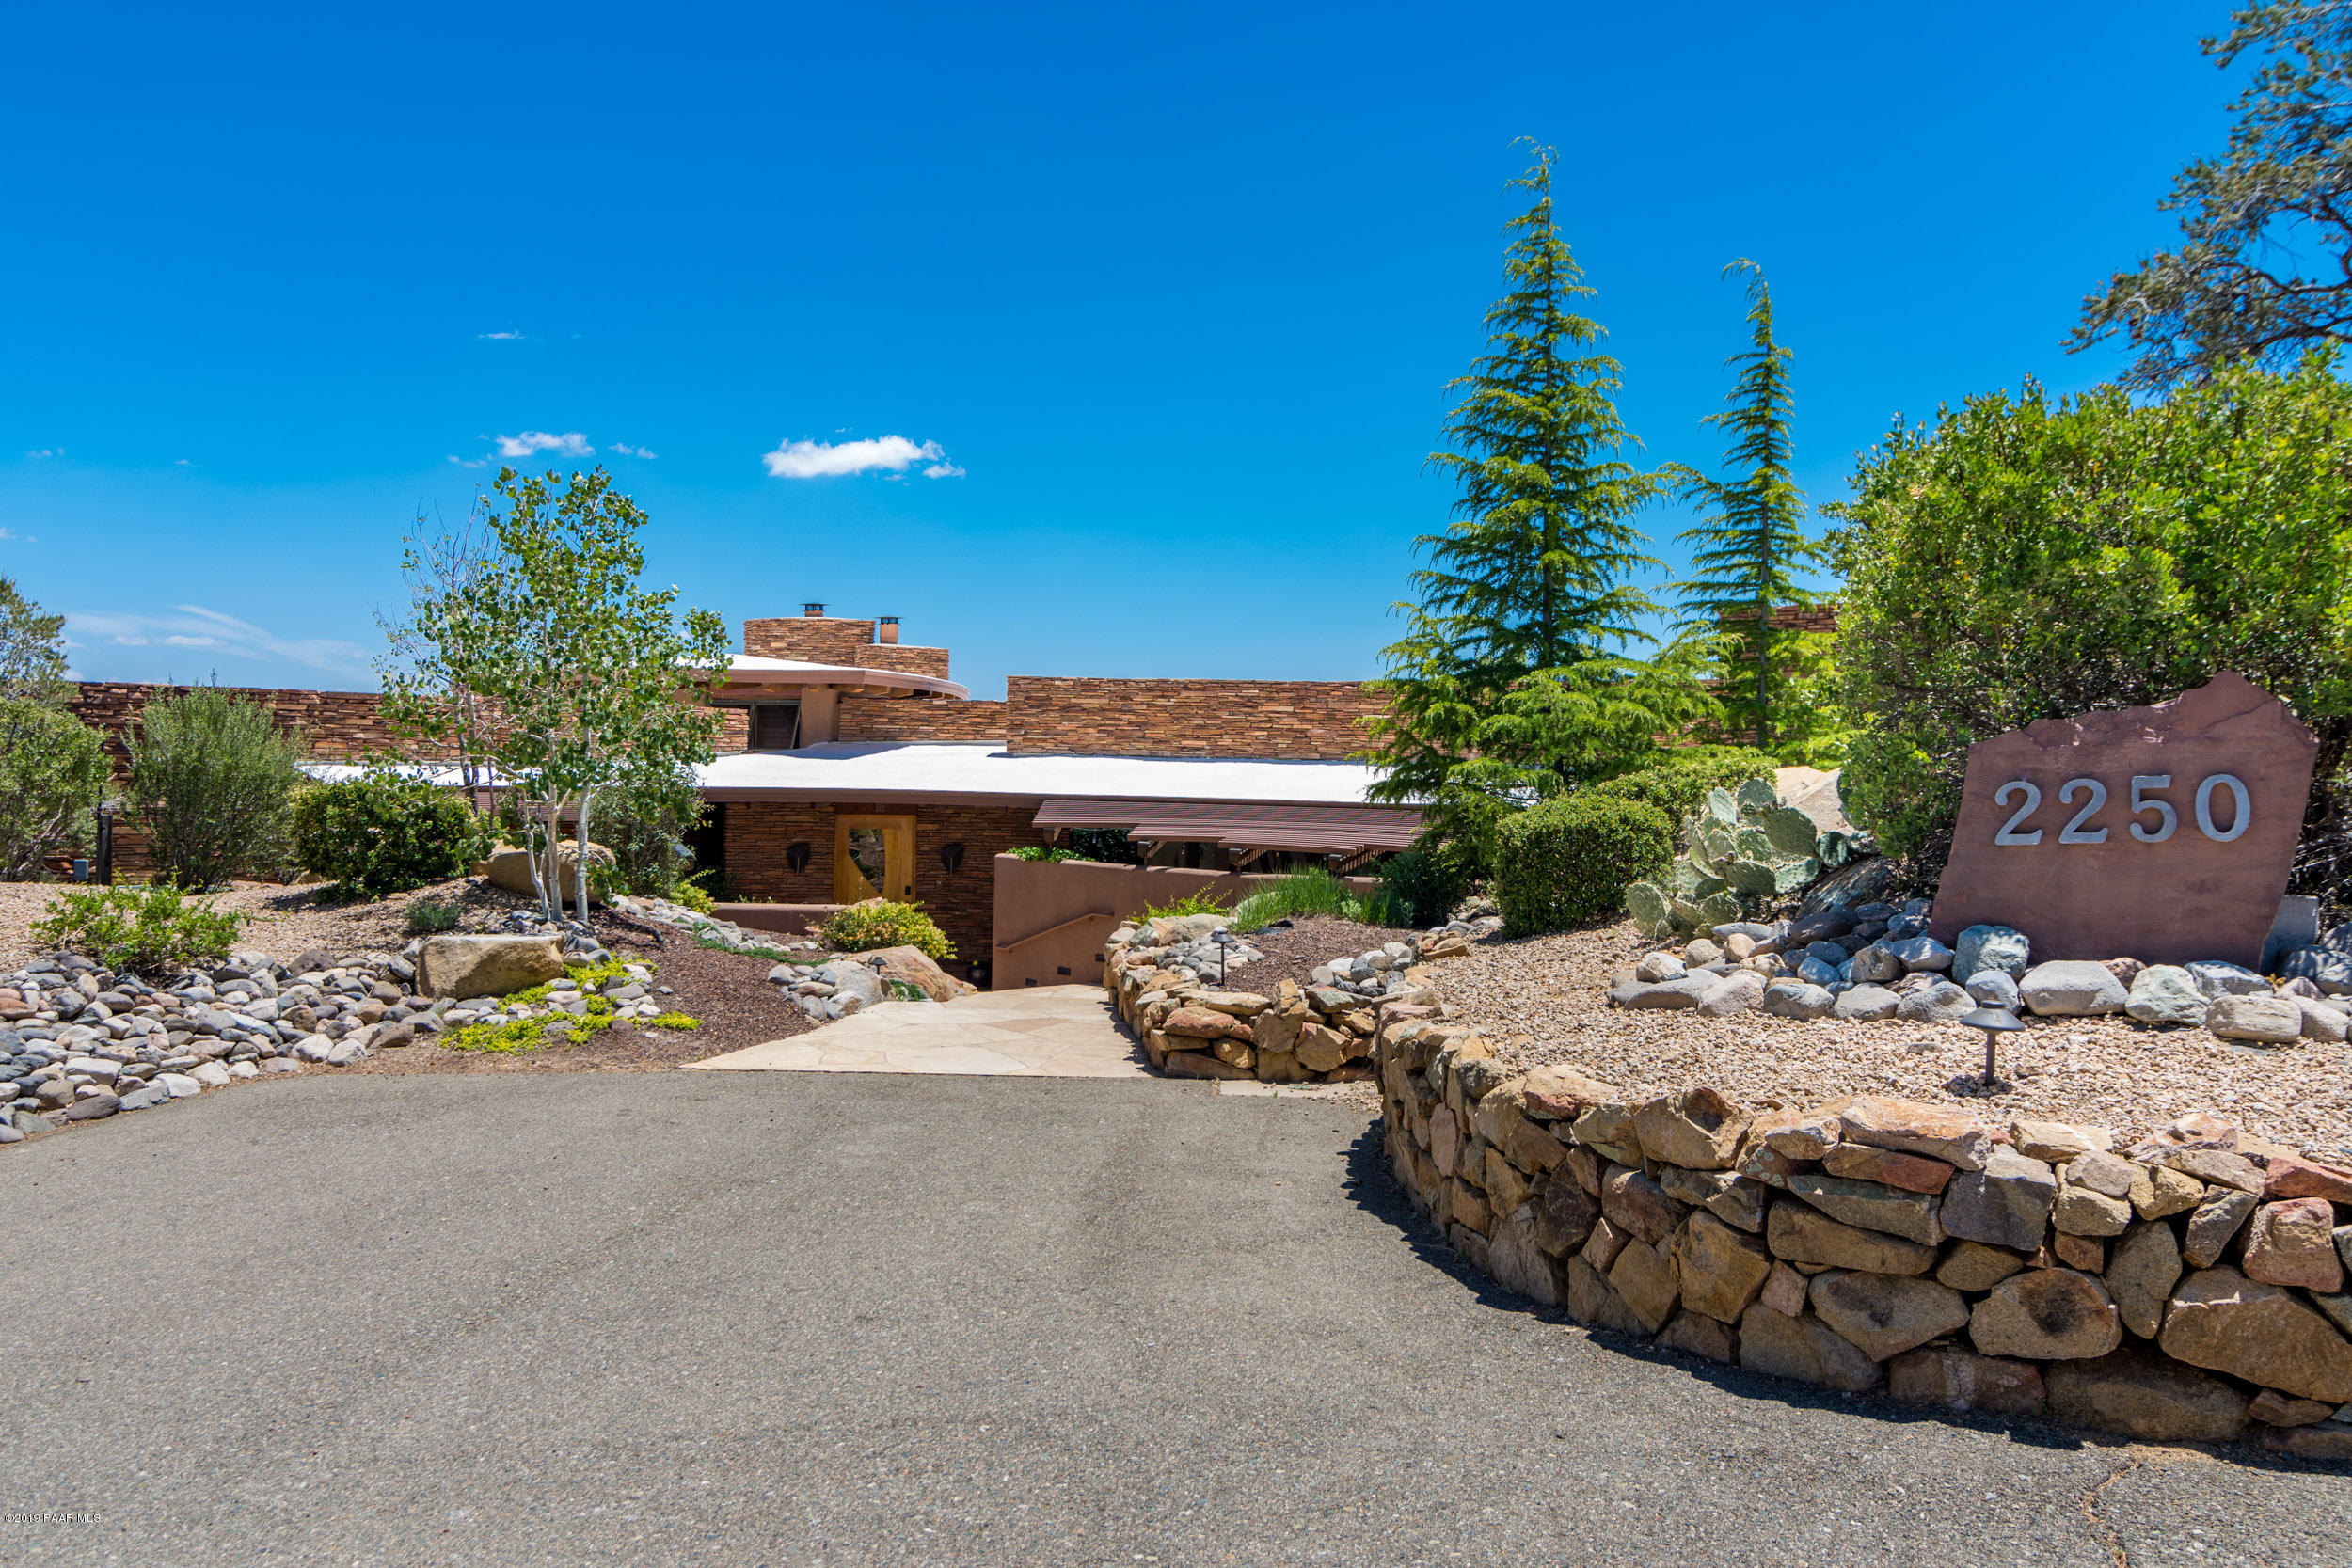 2250 W Aspen Acres Drive Drive, Prescott, Arizona